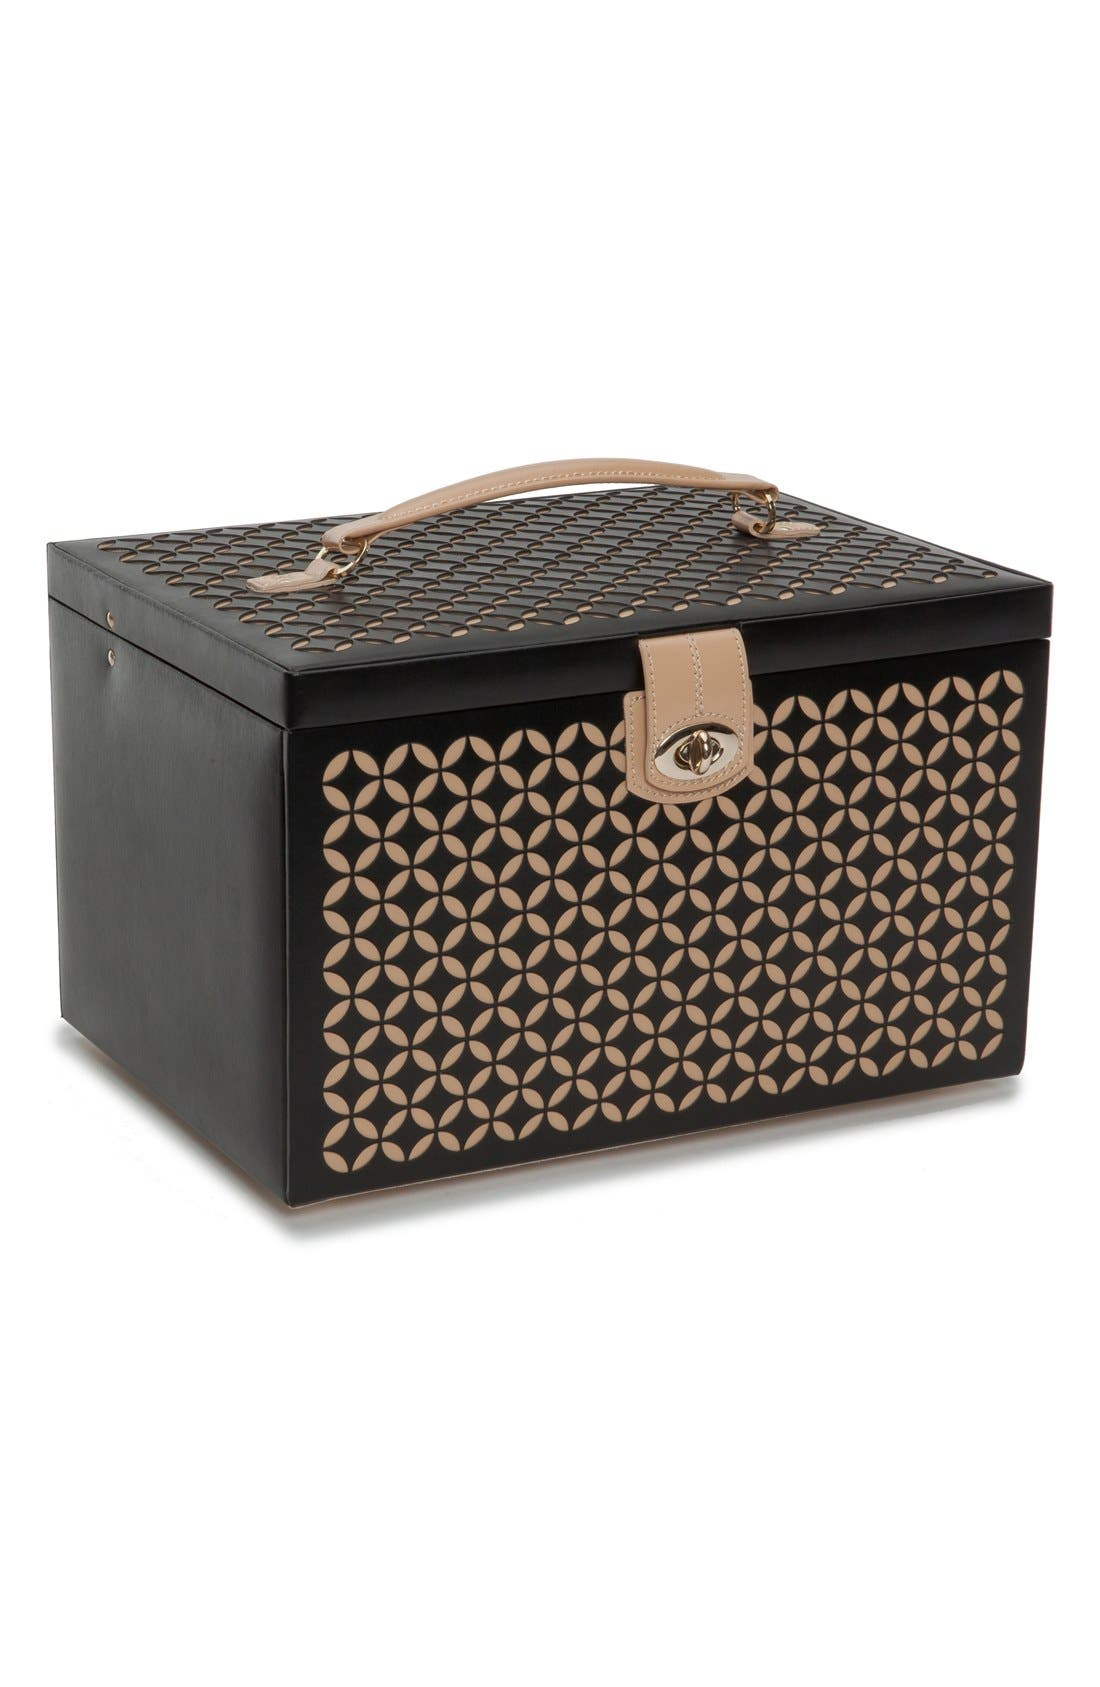 'Chloe' Jewelry Box,                             Main thumbnail 1, color,                             Black